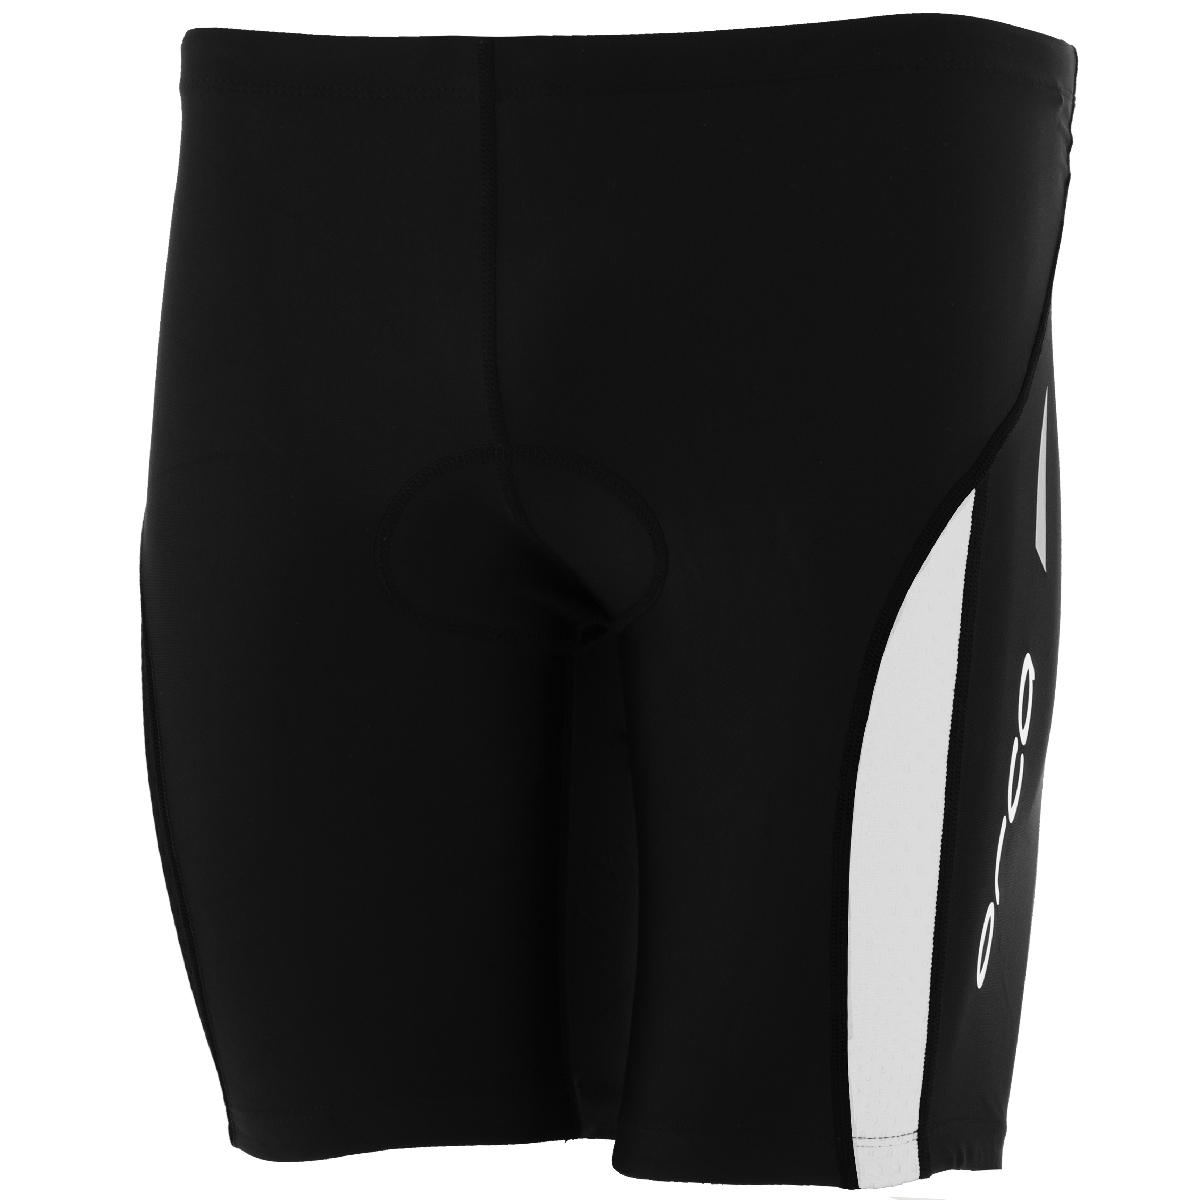 Orca Core Triathlon Short Men's Size XS Black White U.S.A. & Canada